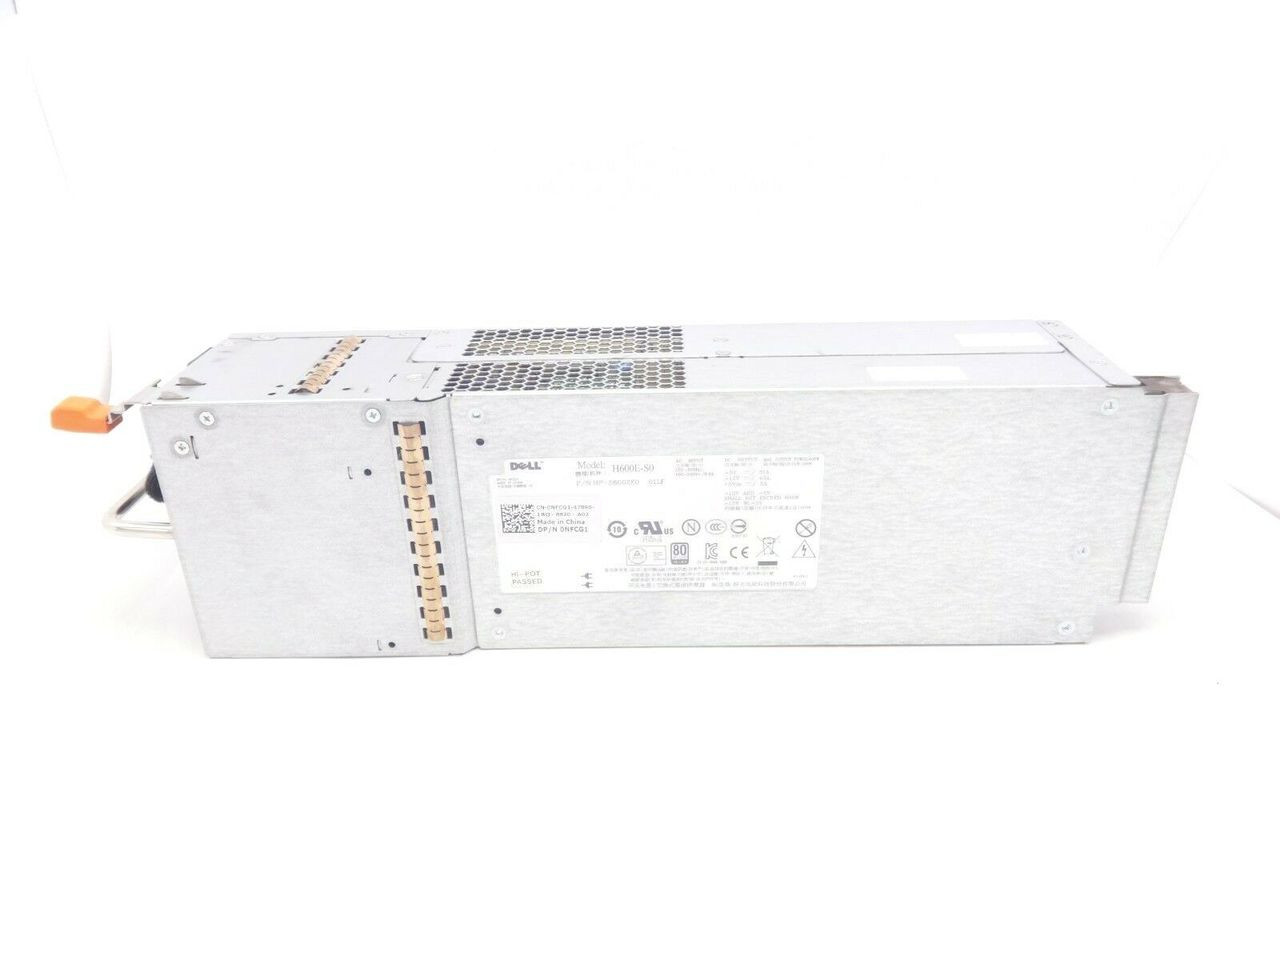 Dell NFCG1 MD1200/MD1220/MD3200 600w Power Supply H600E-S0 S6002E0